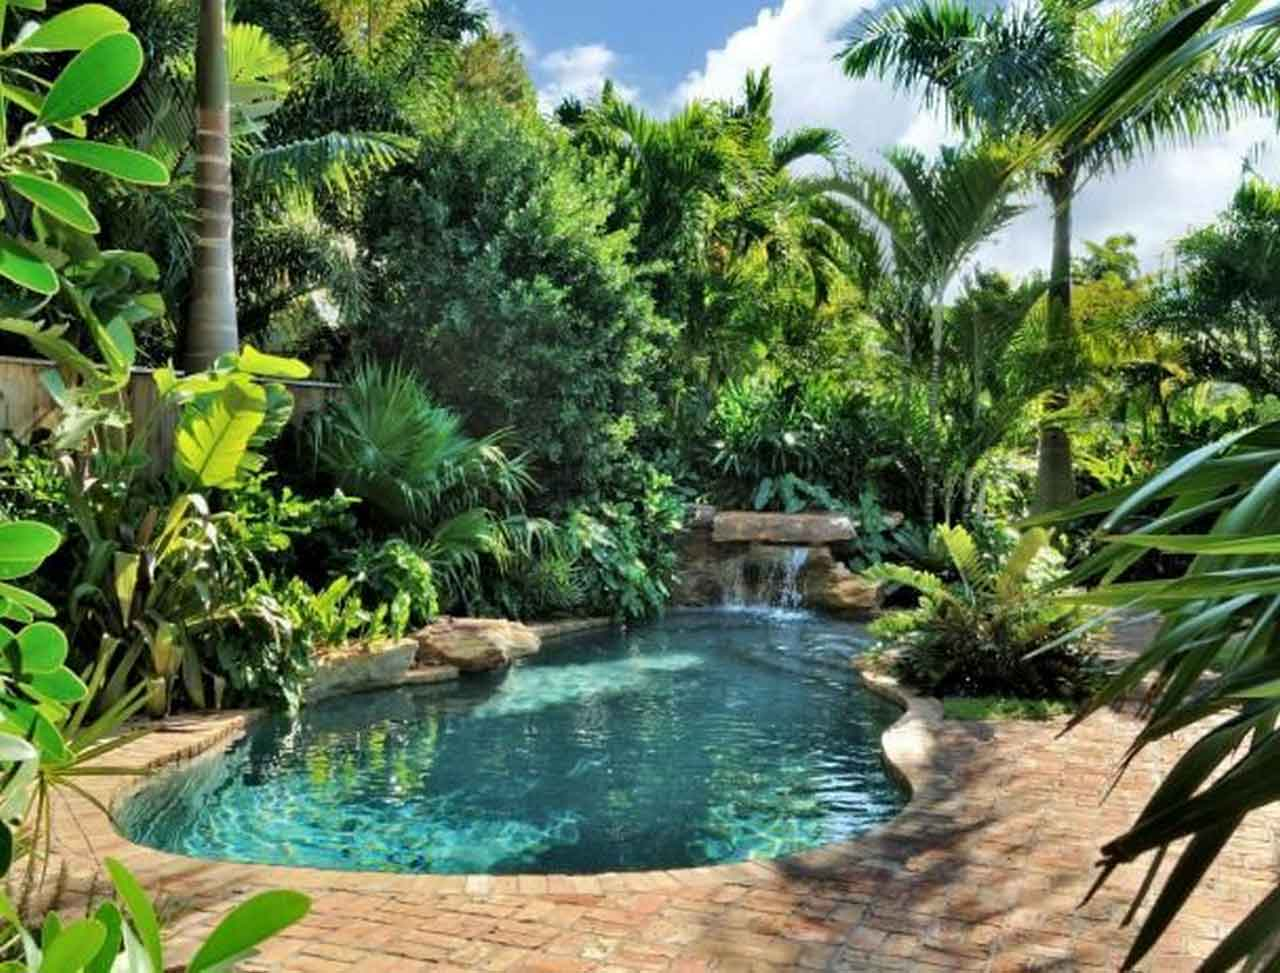 7 Unbelievable Facts About Inground Pool Fountains | Roy Home Design